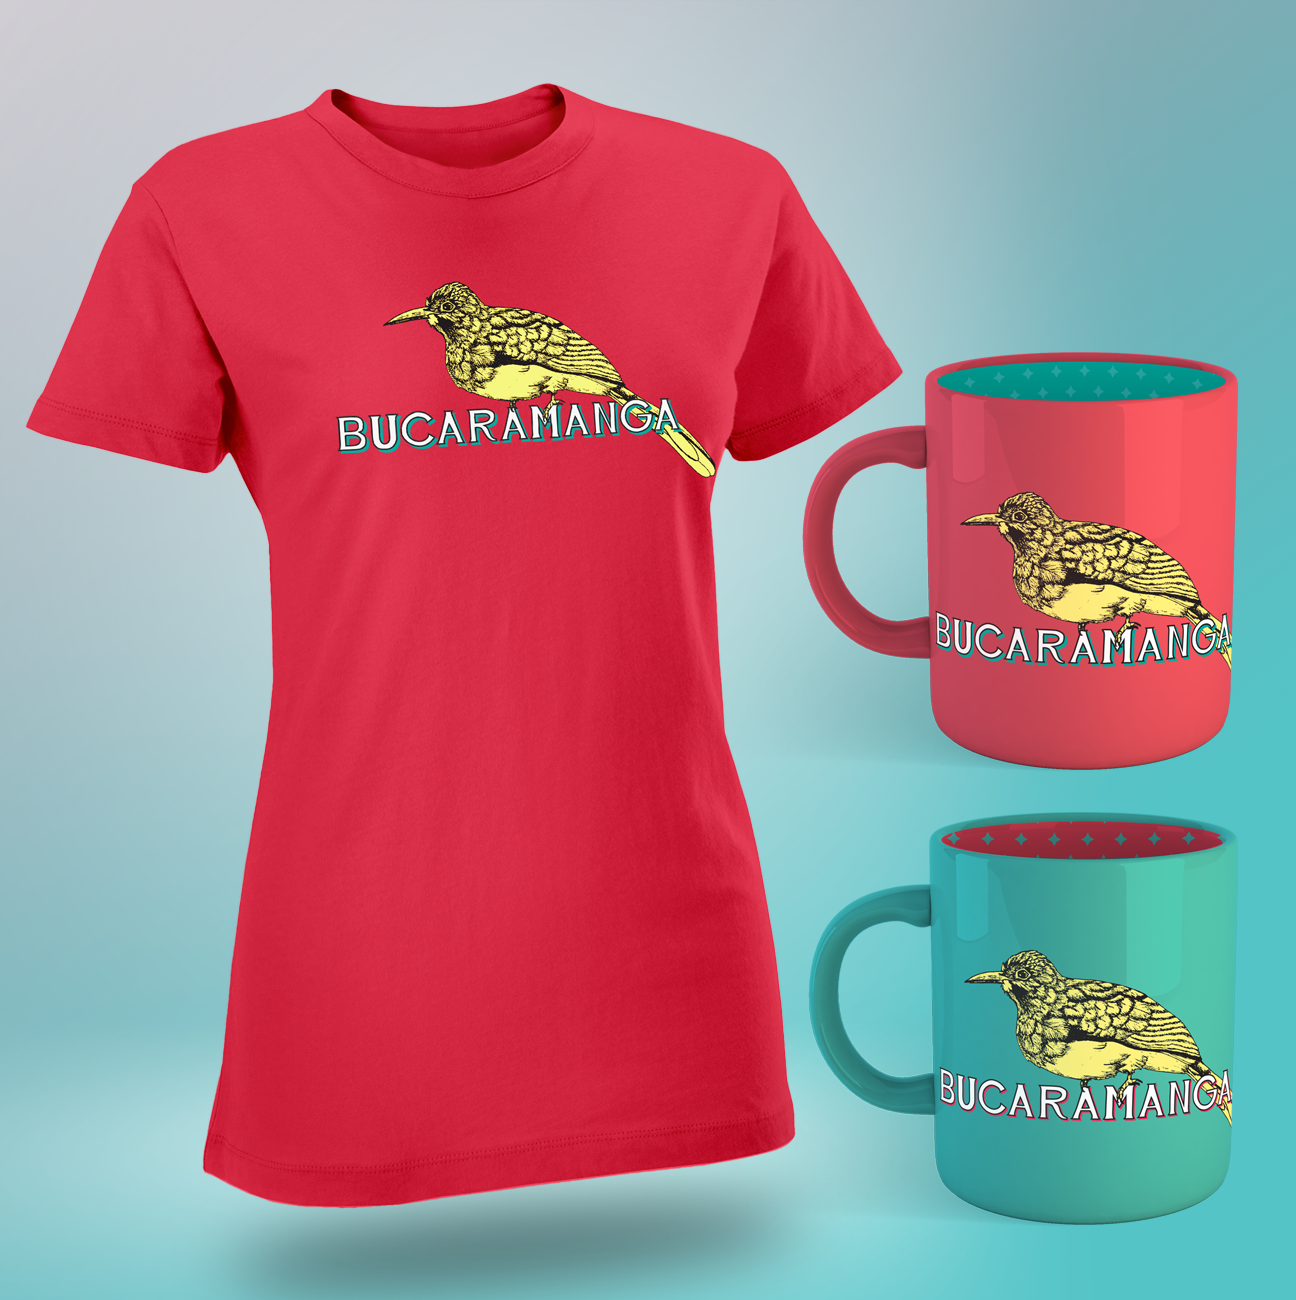 Bucaramanga Coffee Merchandise